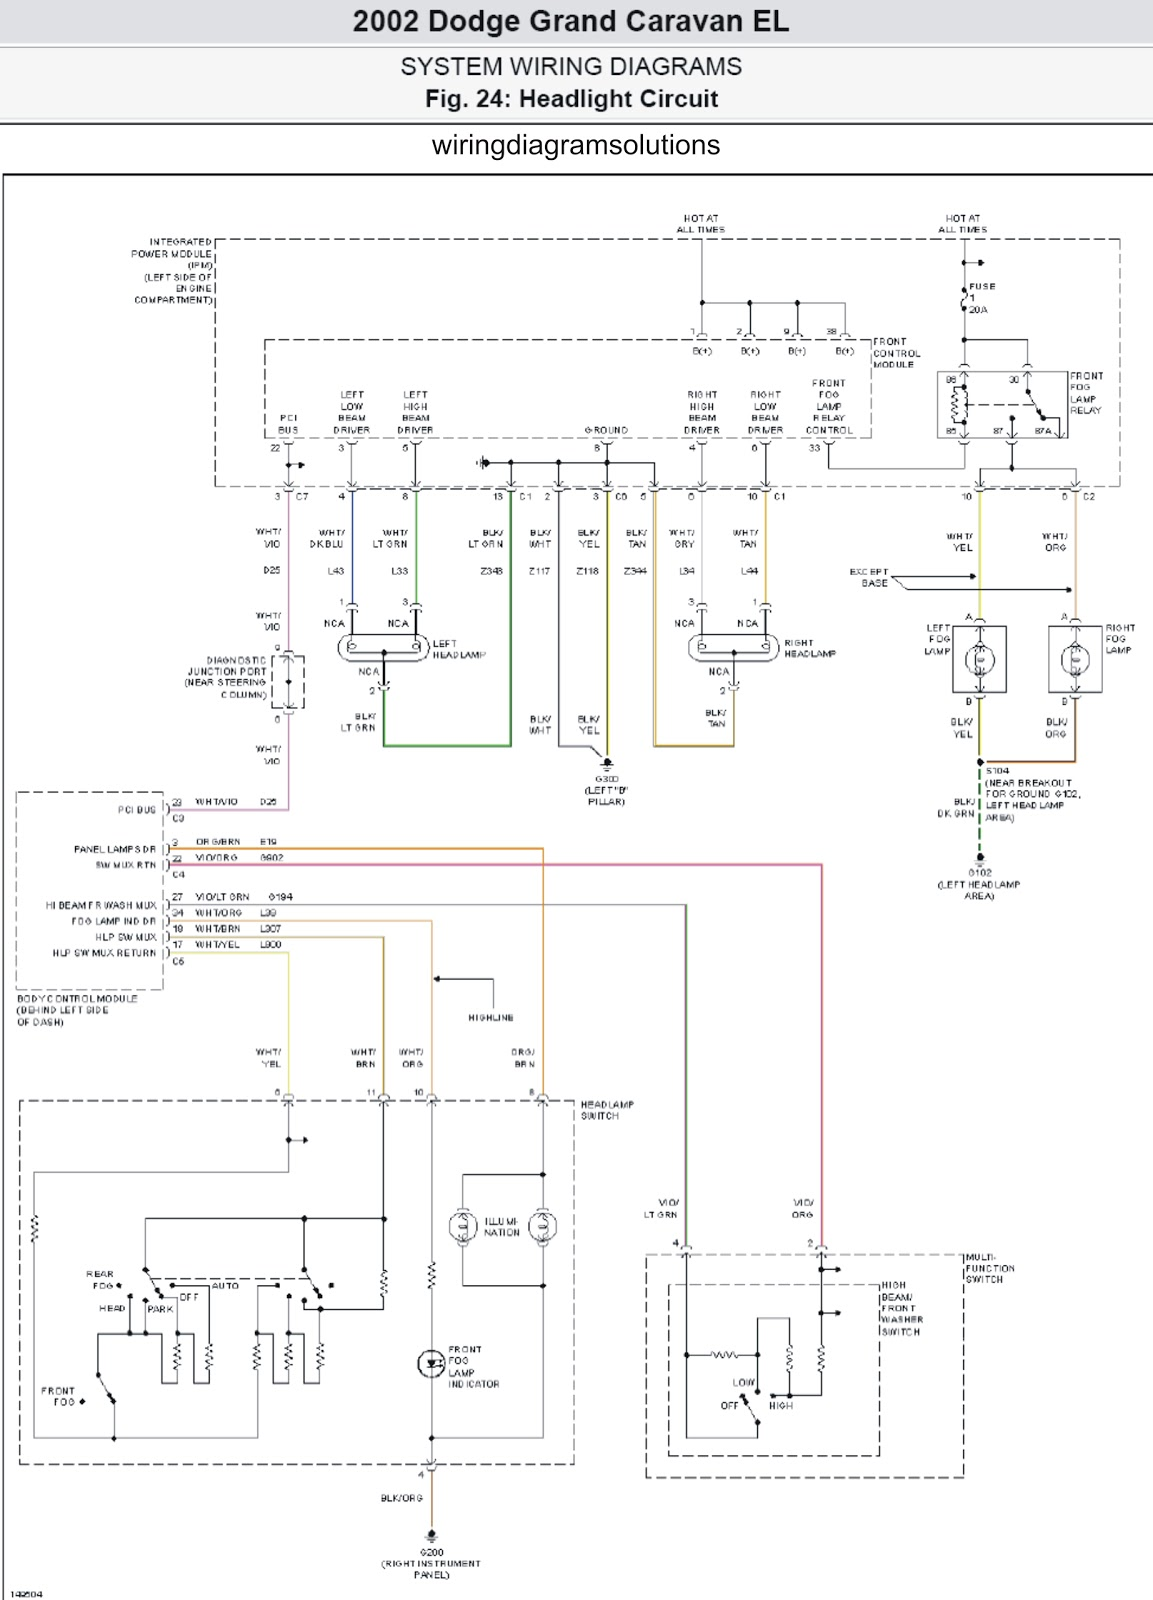 2002+dodge+caravan+Headlight+Circuit 2006 dodge caravan wiring diagram 2006 dodge caravan air 2002 dodge ram radio wiring diagram at aneh.co